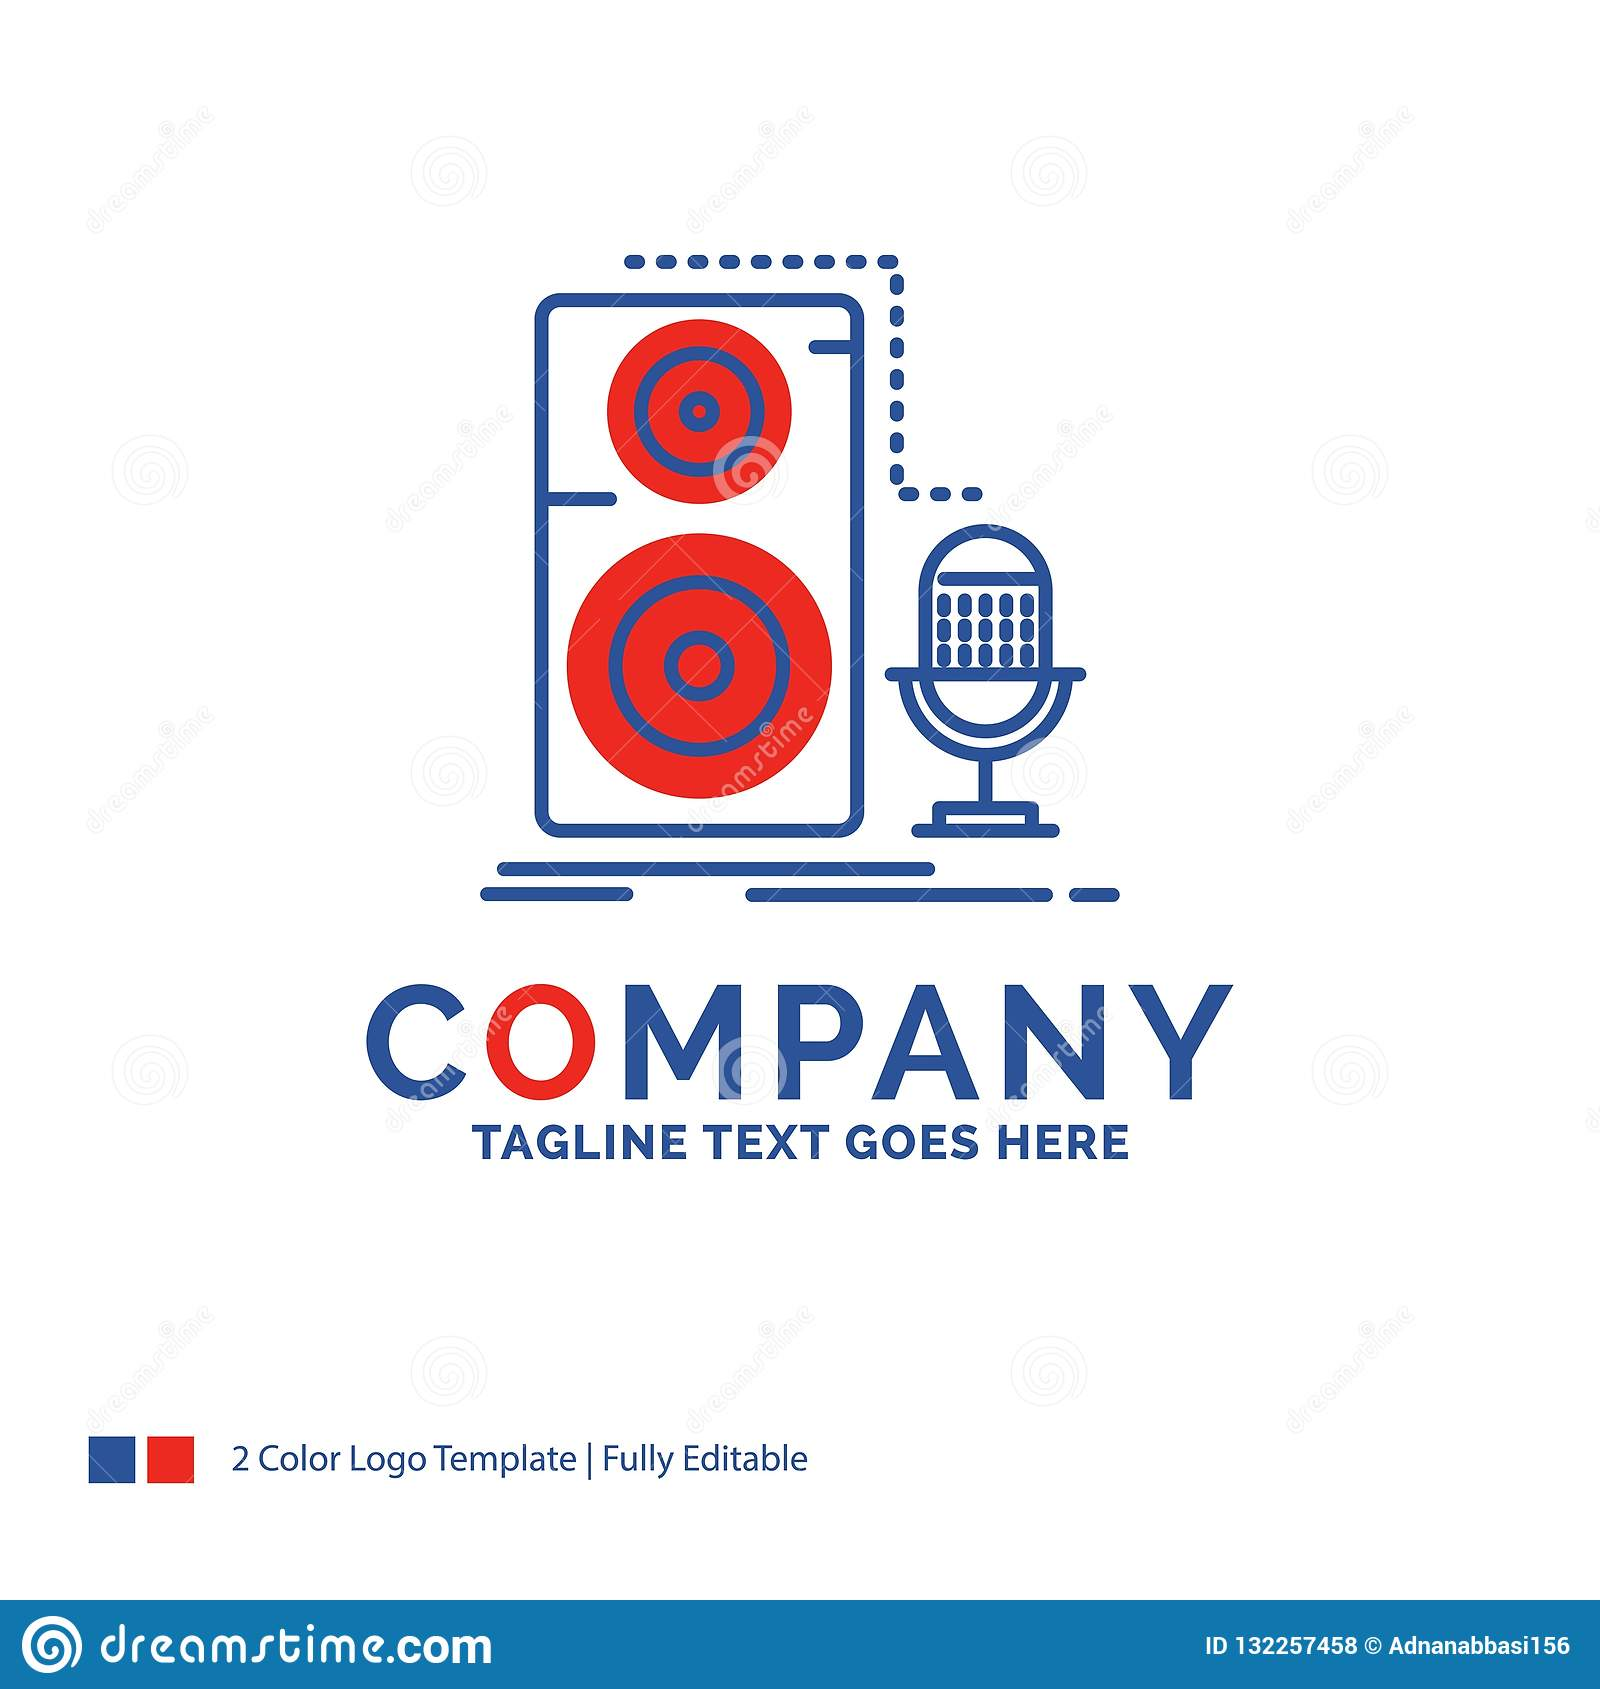 Company Name Logo Design For Live, Mic, Microphone, Record